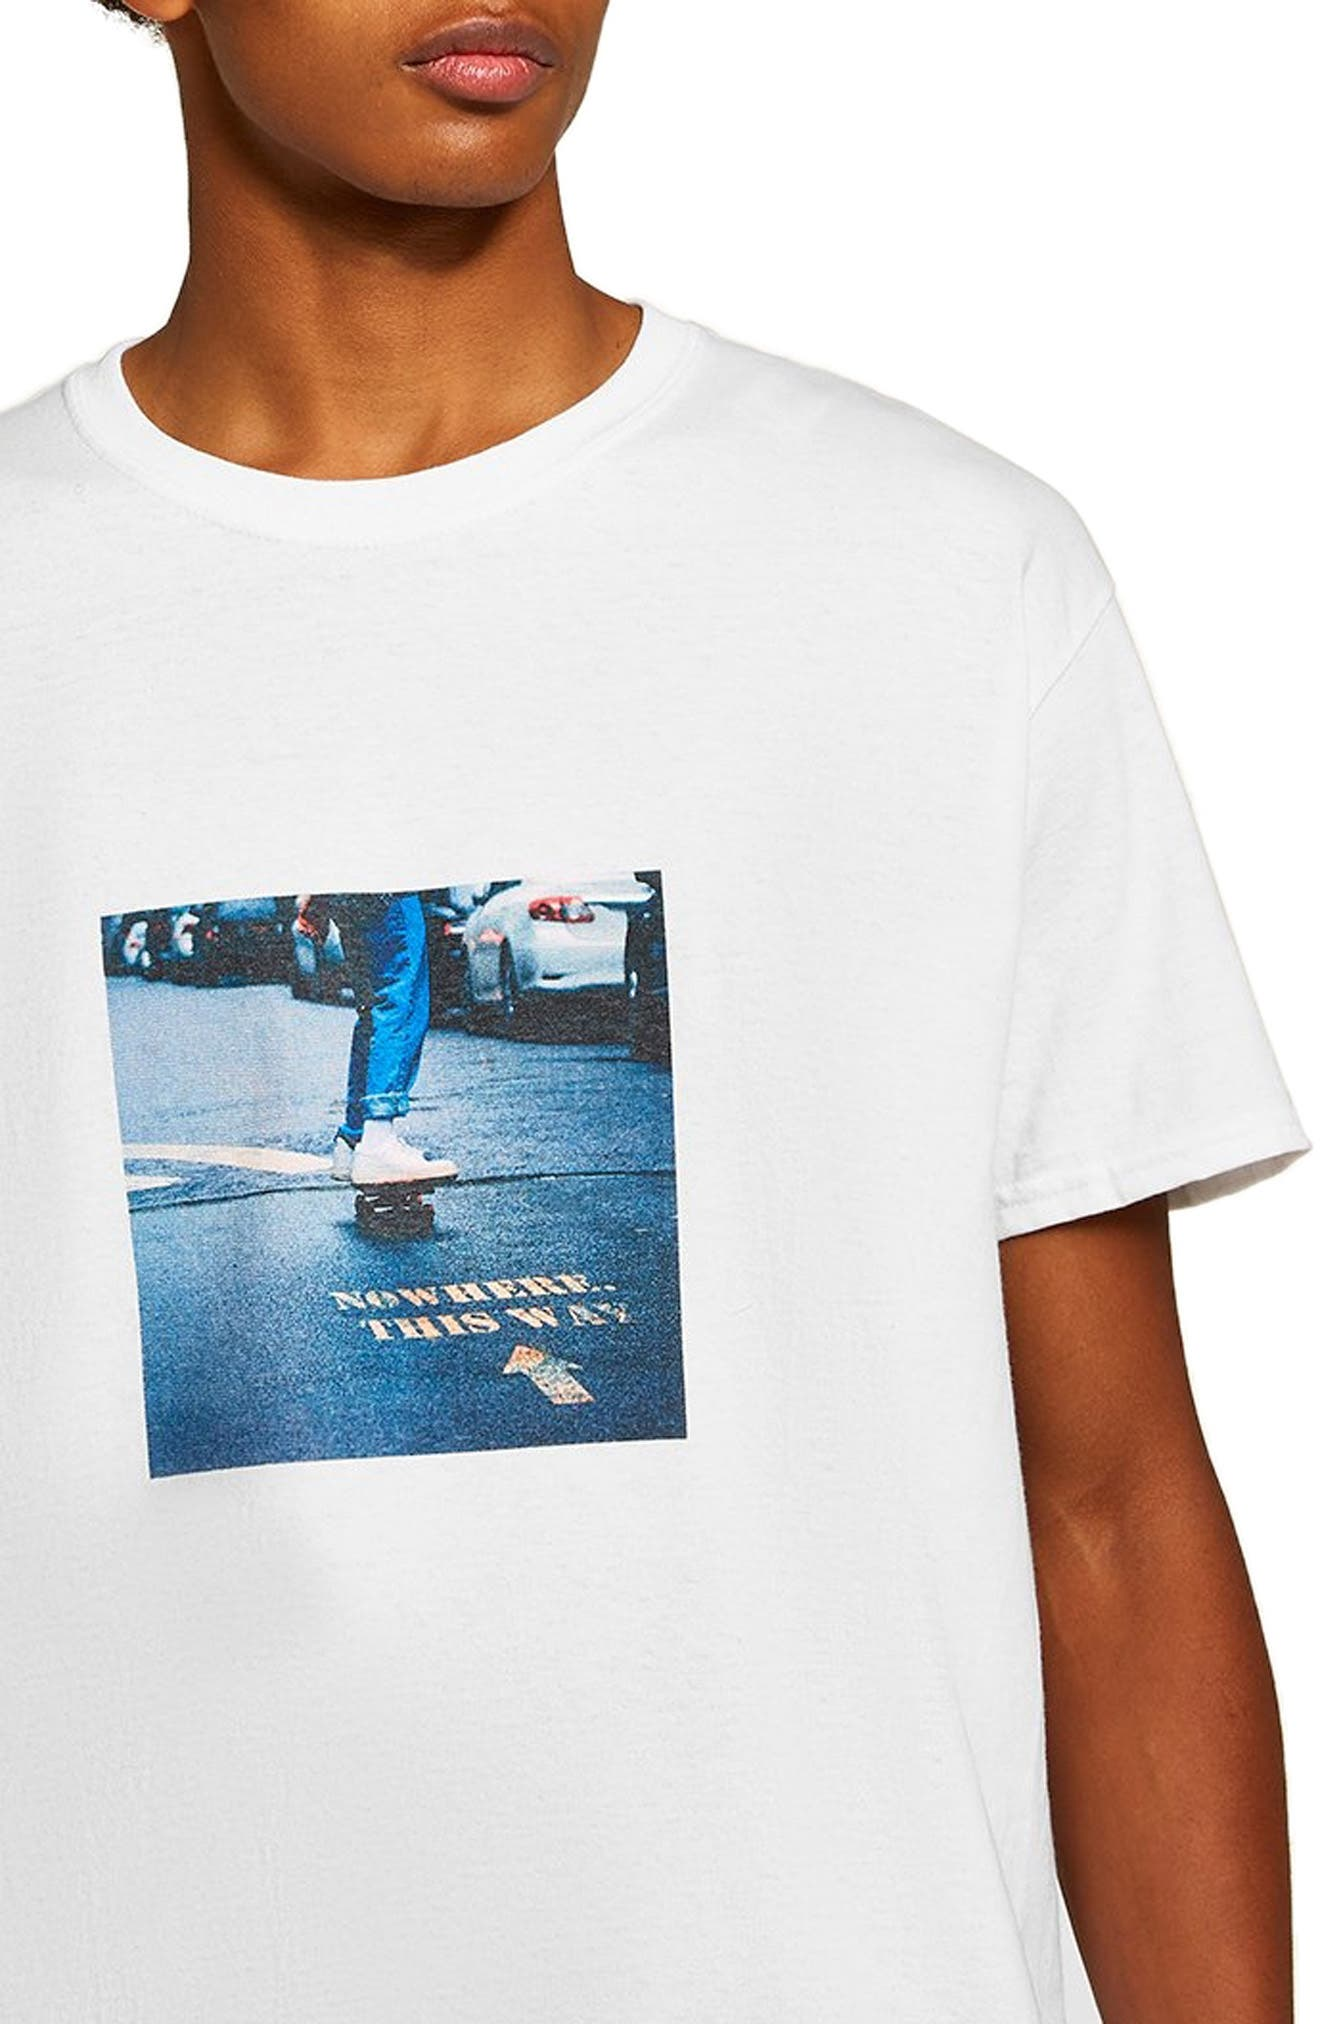 Skater Classic T-Shirt,                             Alternate thumbnail 3, color,                             WHITE MULTI